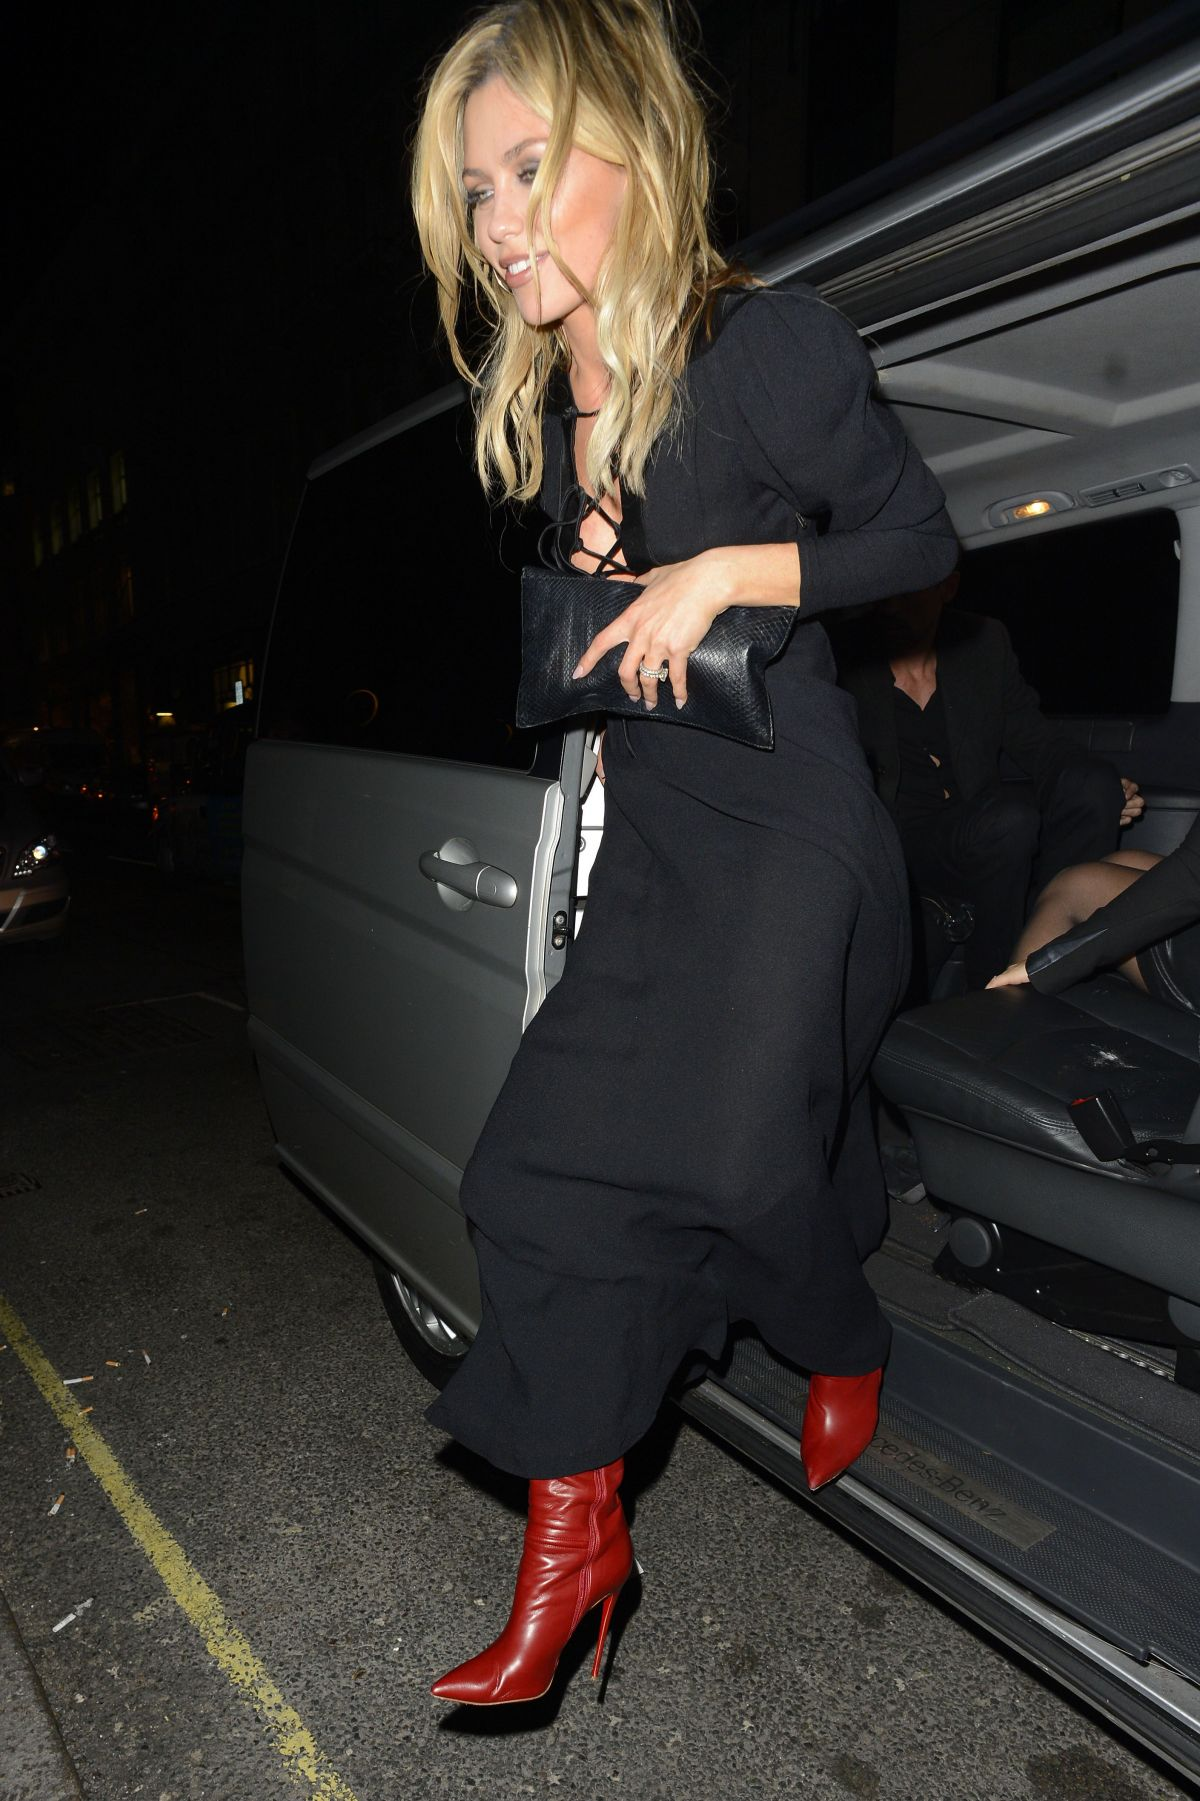 ABIGAIL ABBEY CLANCY at Nme After-party in London